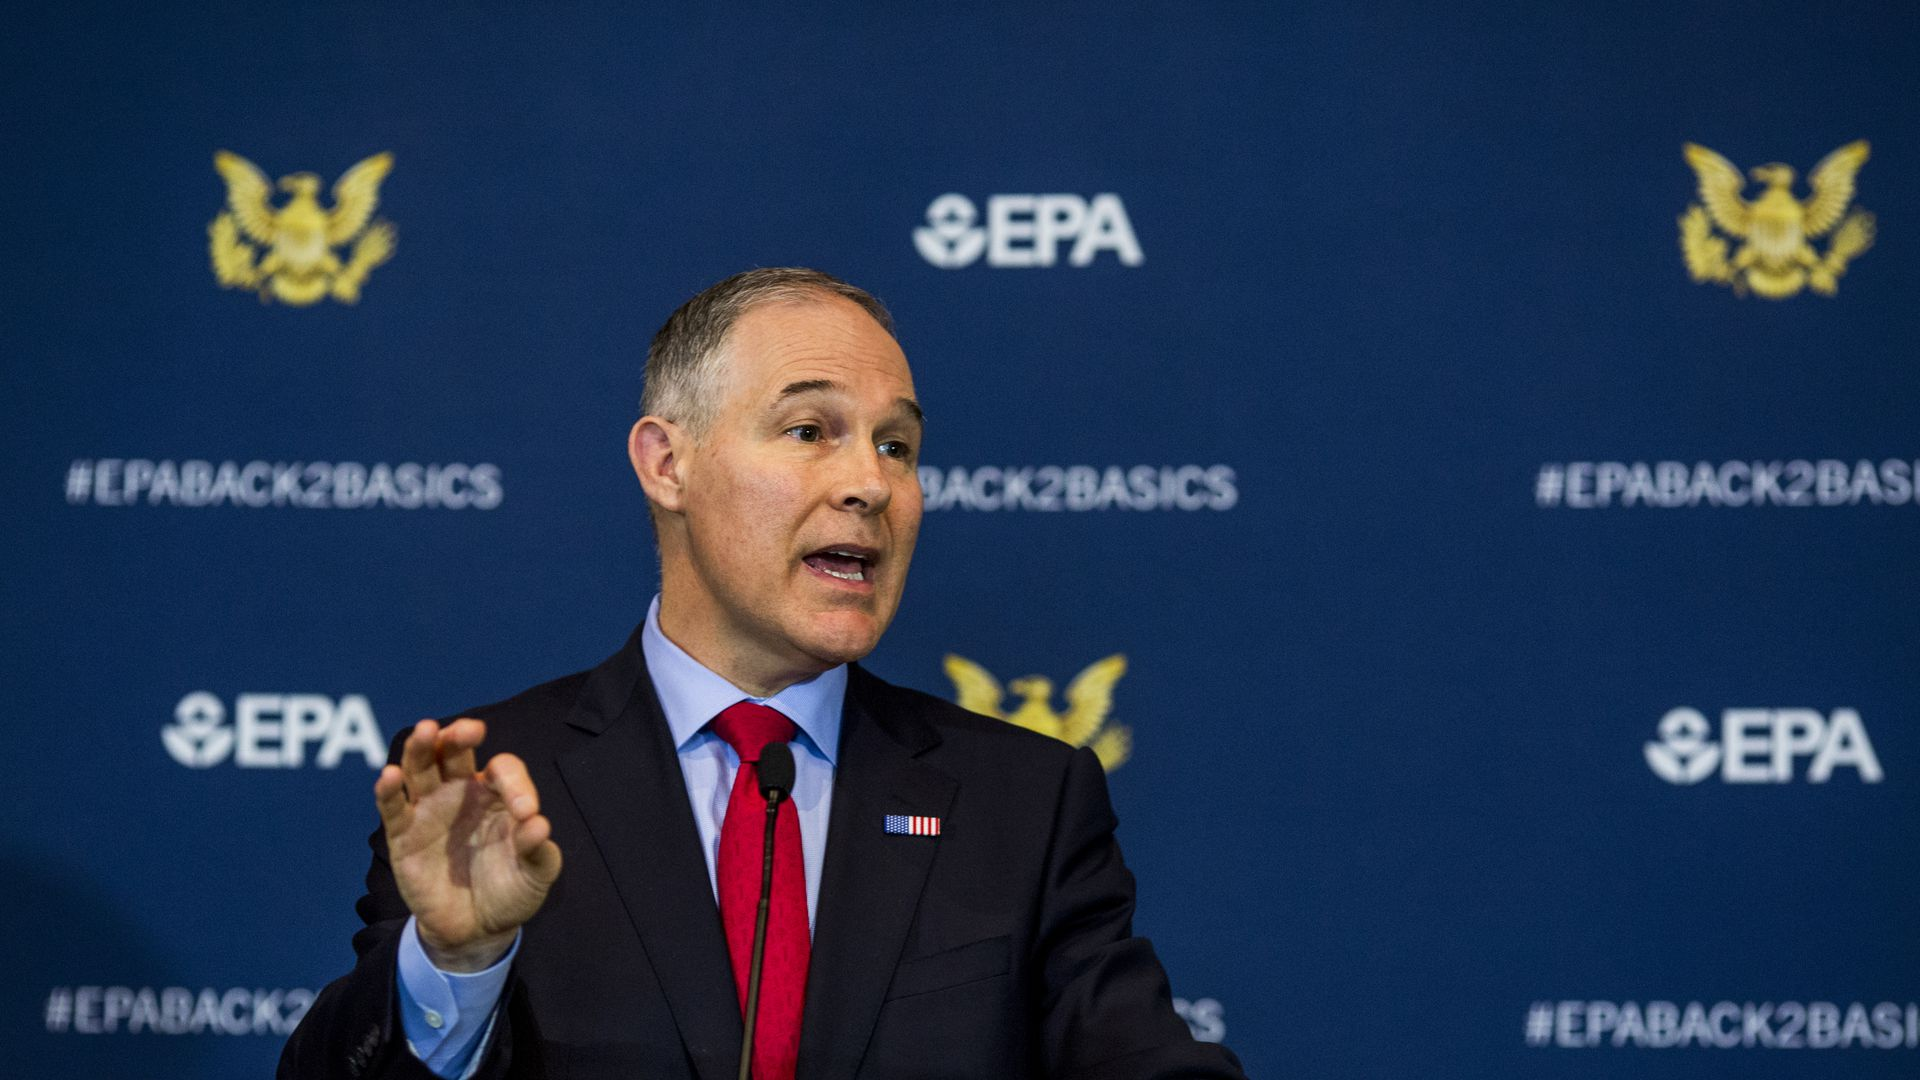 Scott Pruitt at a press conference